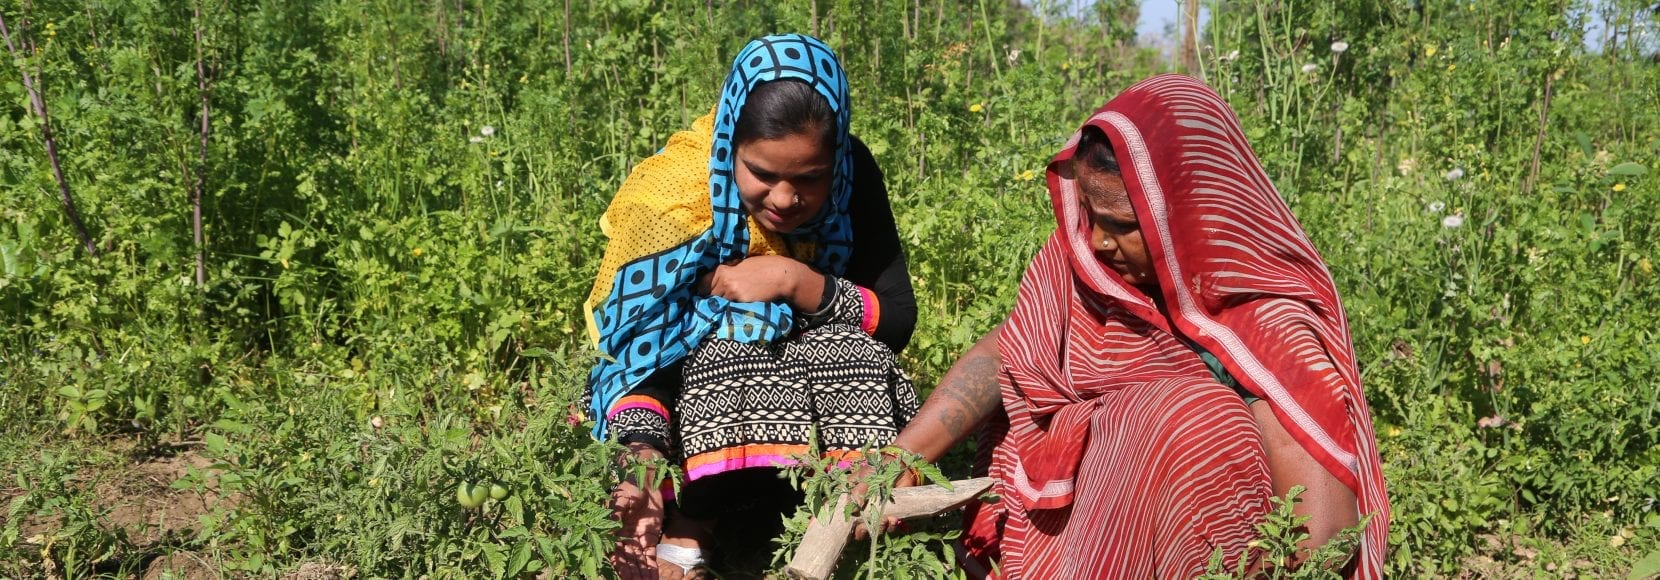 Two women inspecting their crops in India